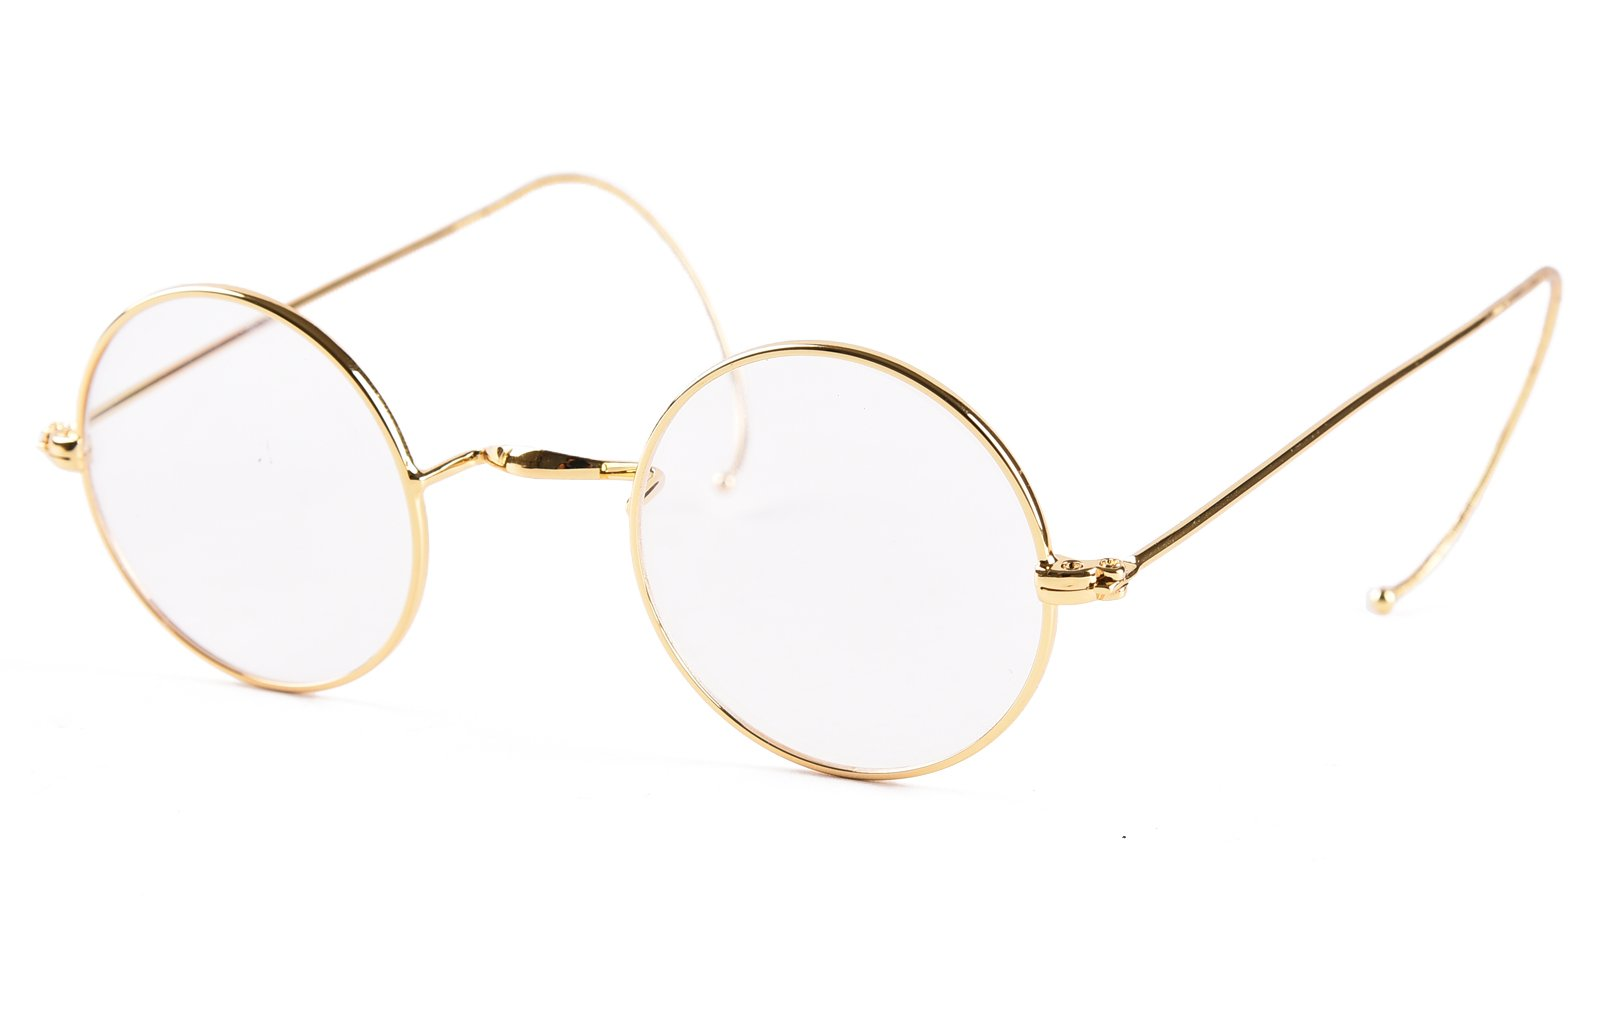 03dfae3caf7 Agstum Retro Small Round Optical Rare Wire Rim Eyeglasses Frame 39mm (Gold